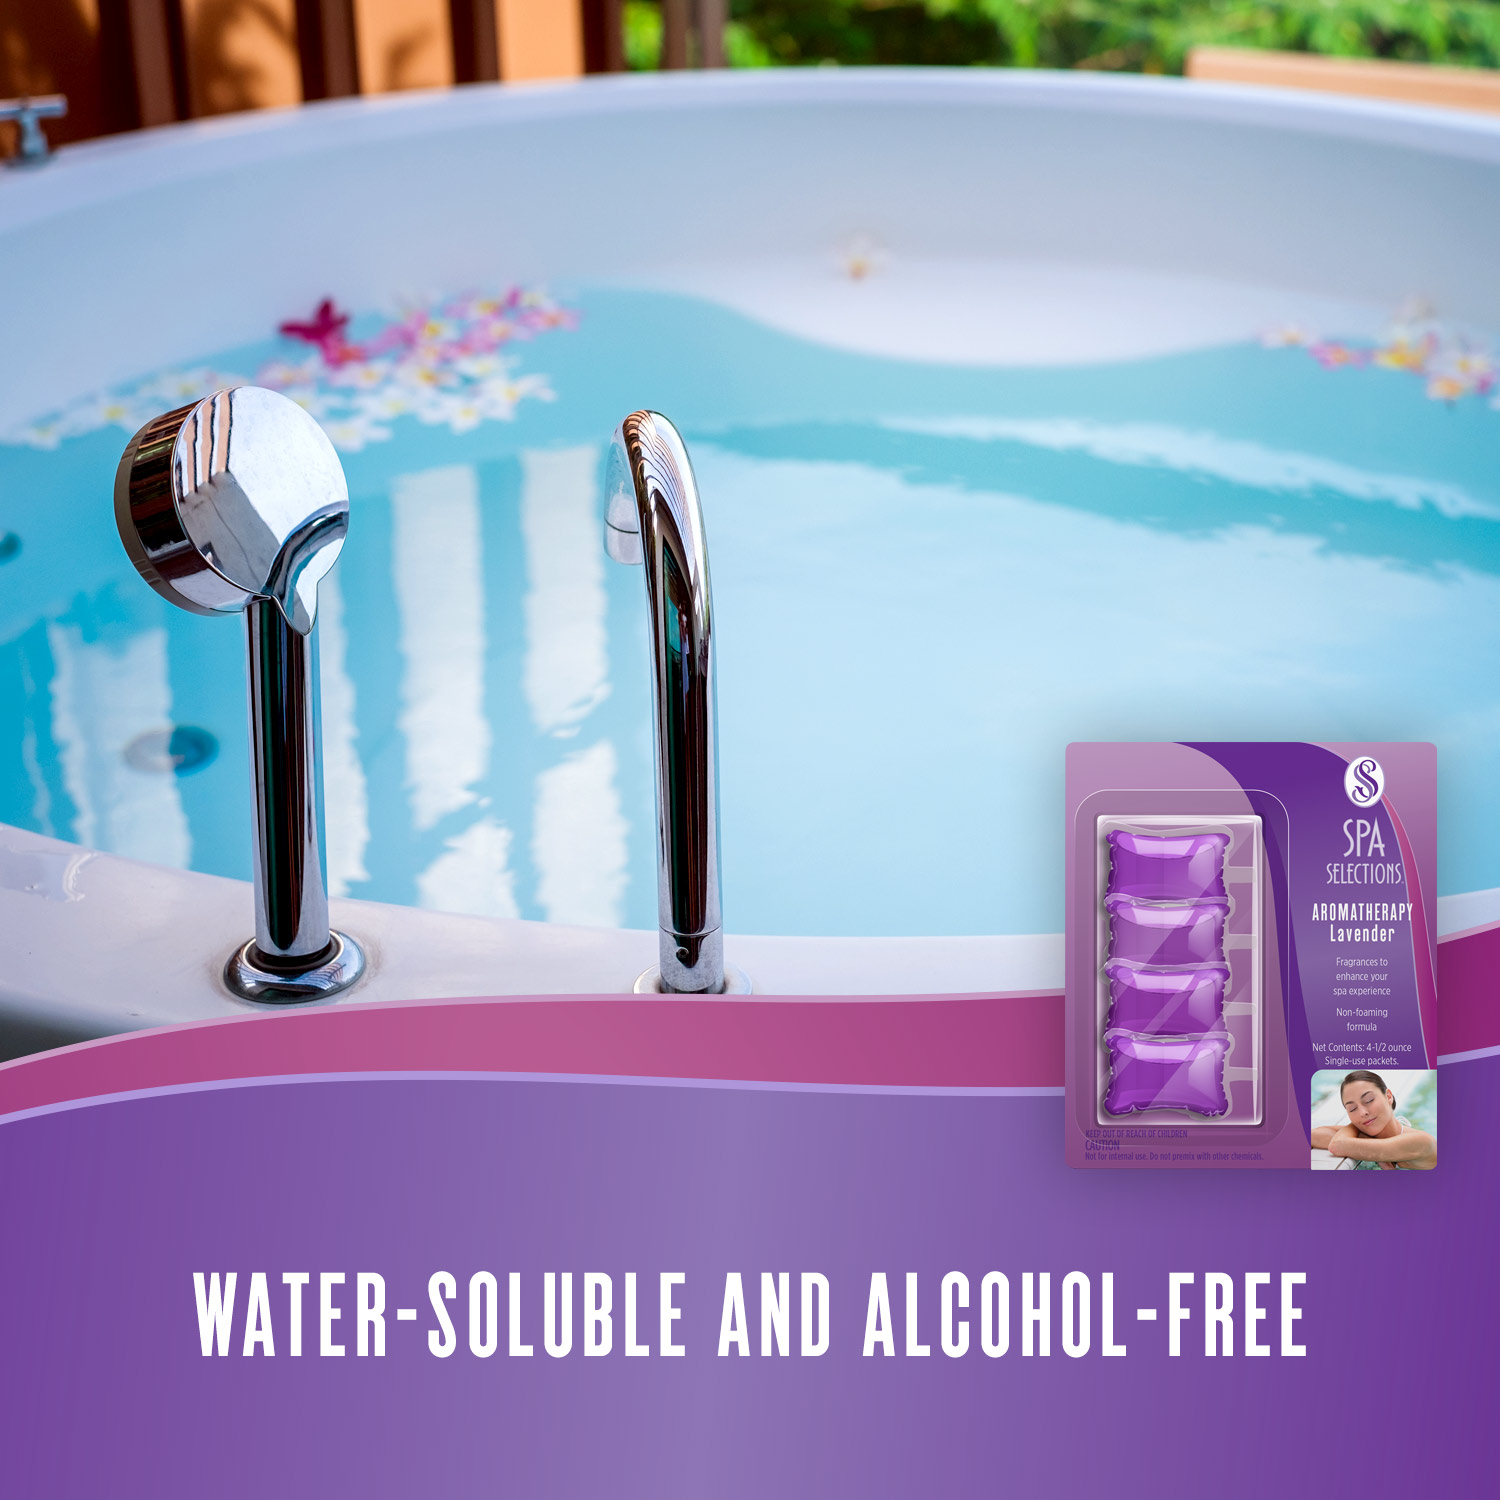 Spa Selections aromatherapy packets are water-soluble and alcohol-free. Photo of outdoor spa.